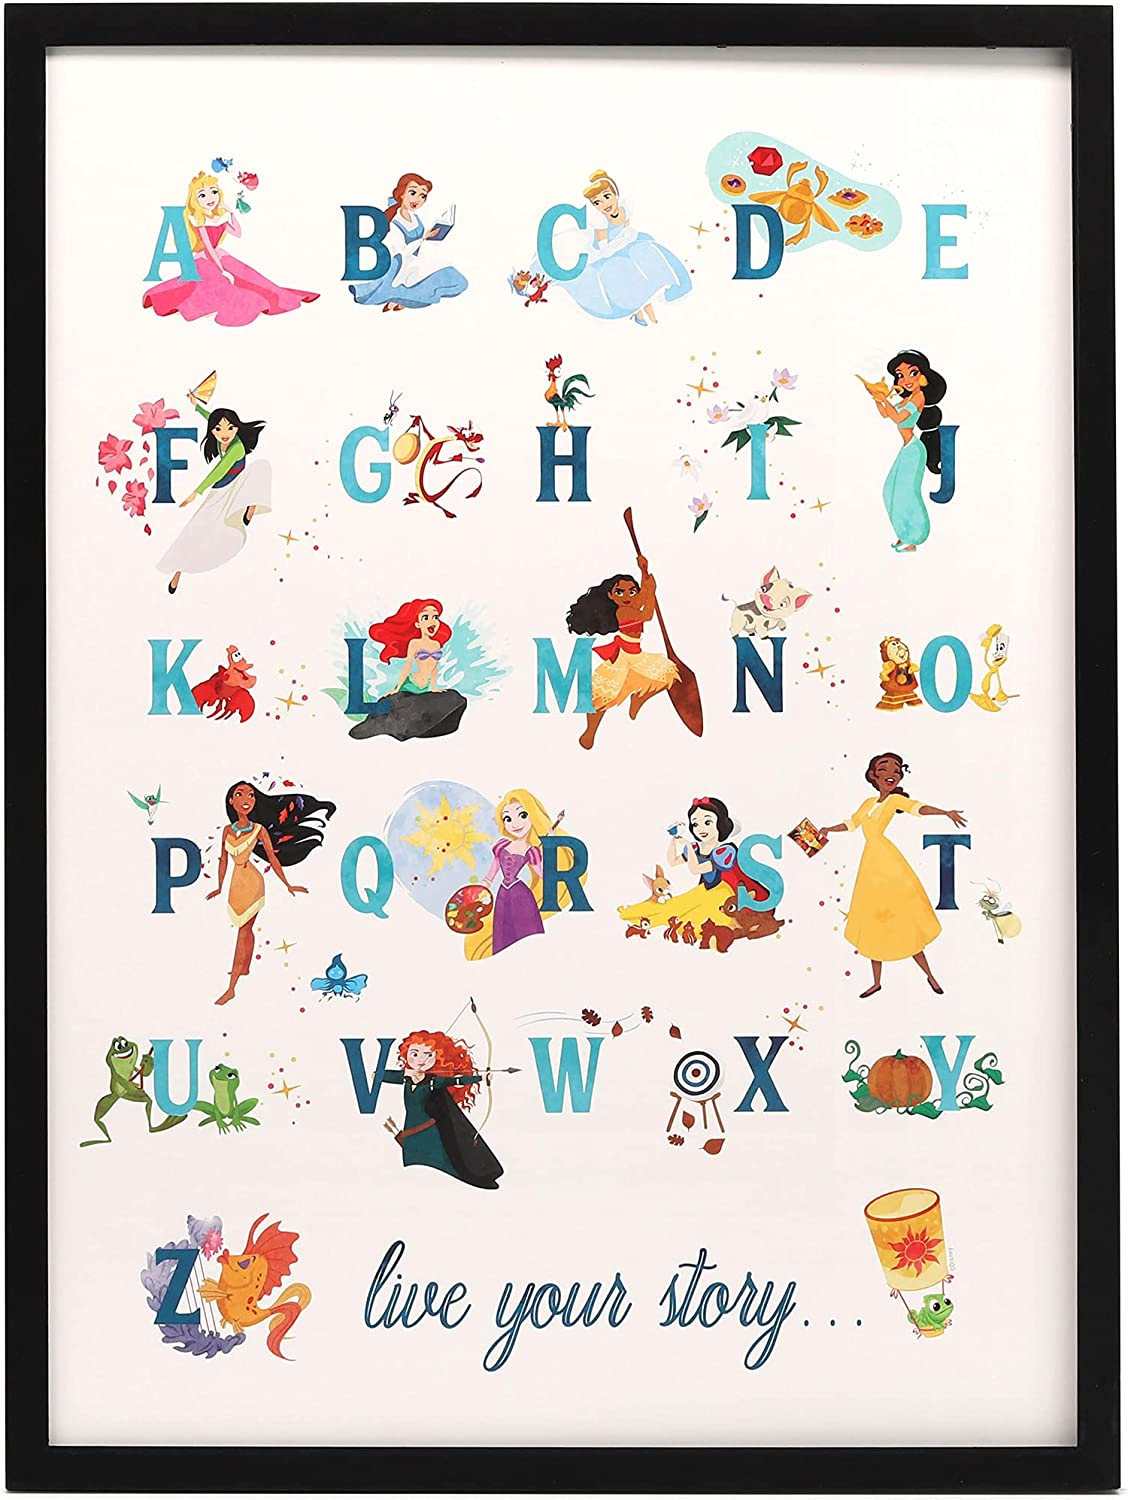 Open Road Brands Disney Princess Alphabet Framed Wood Wall Decor - Large 24 Inch x 18 Inch Picture Featuring Belle, Cinderella, Ariel, Rupunzel and More